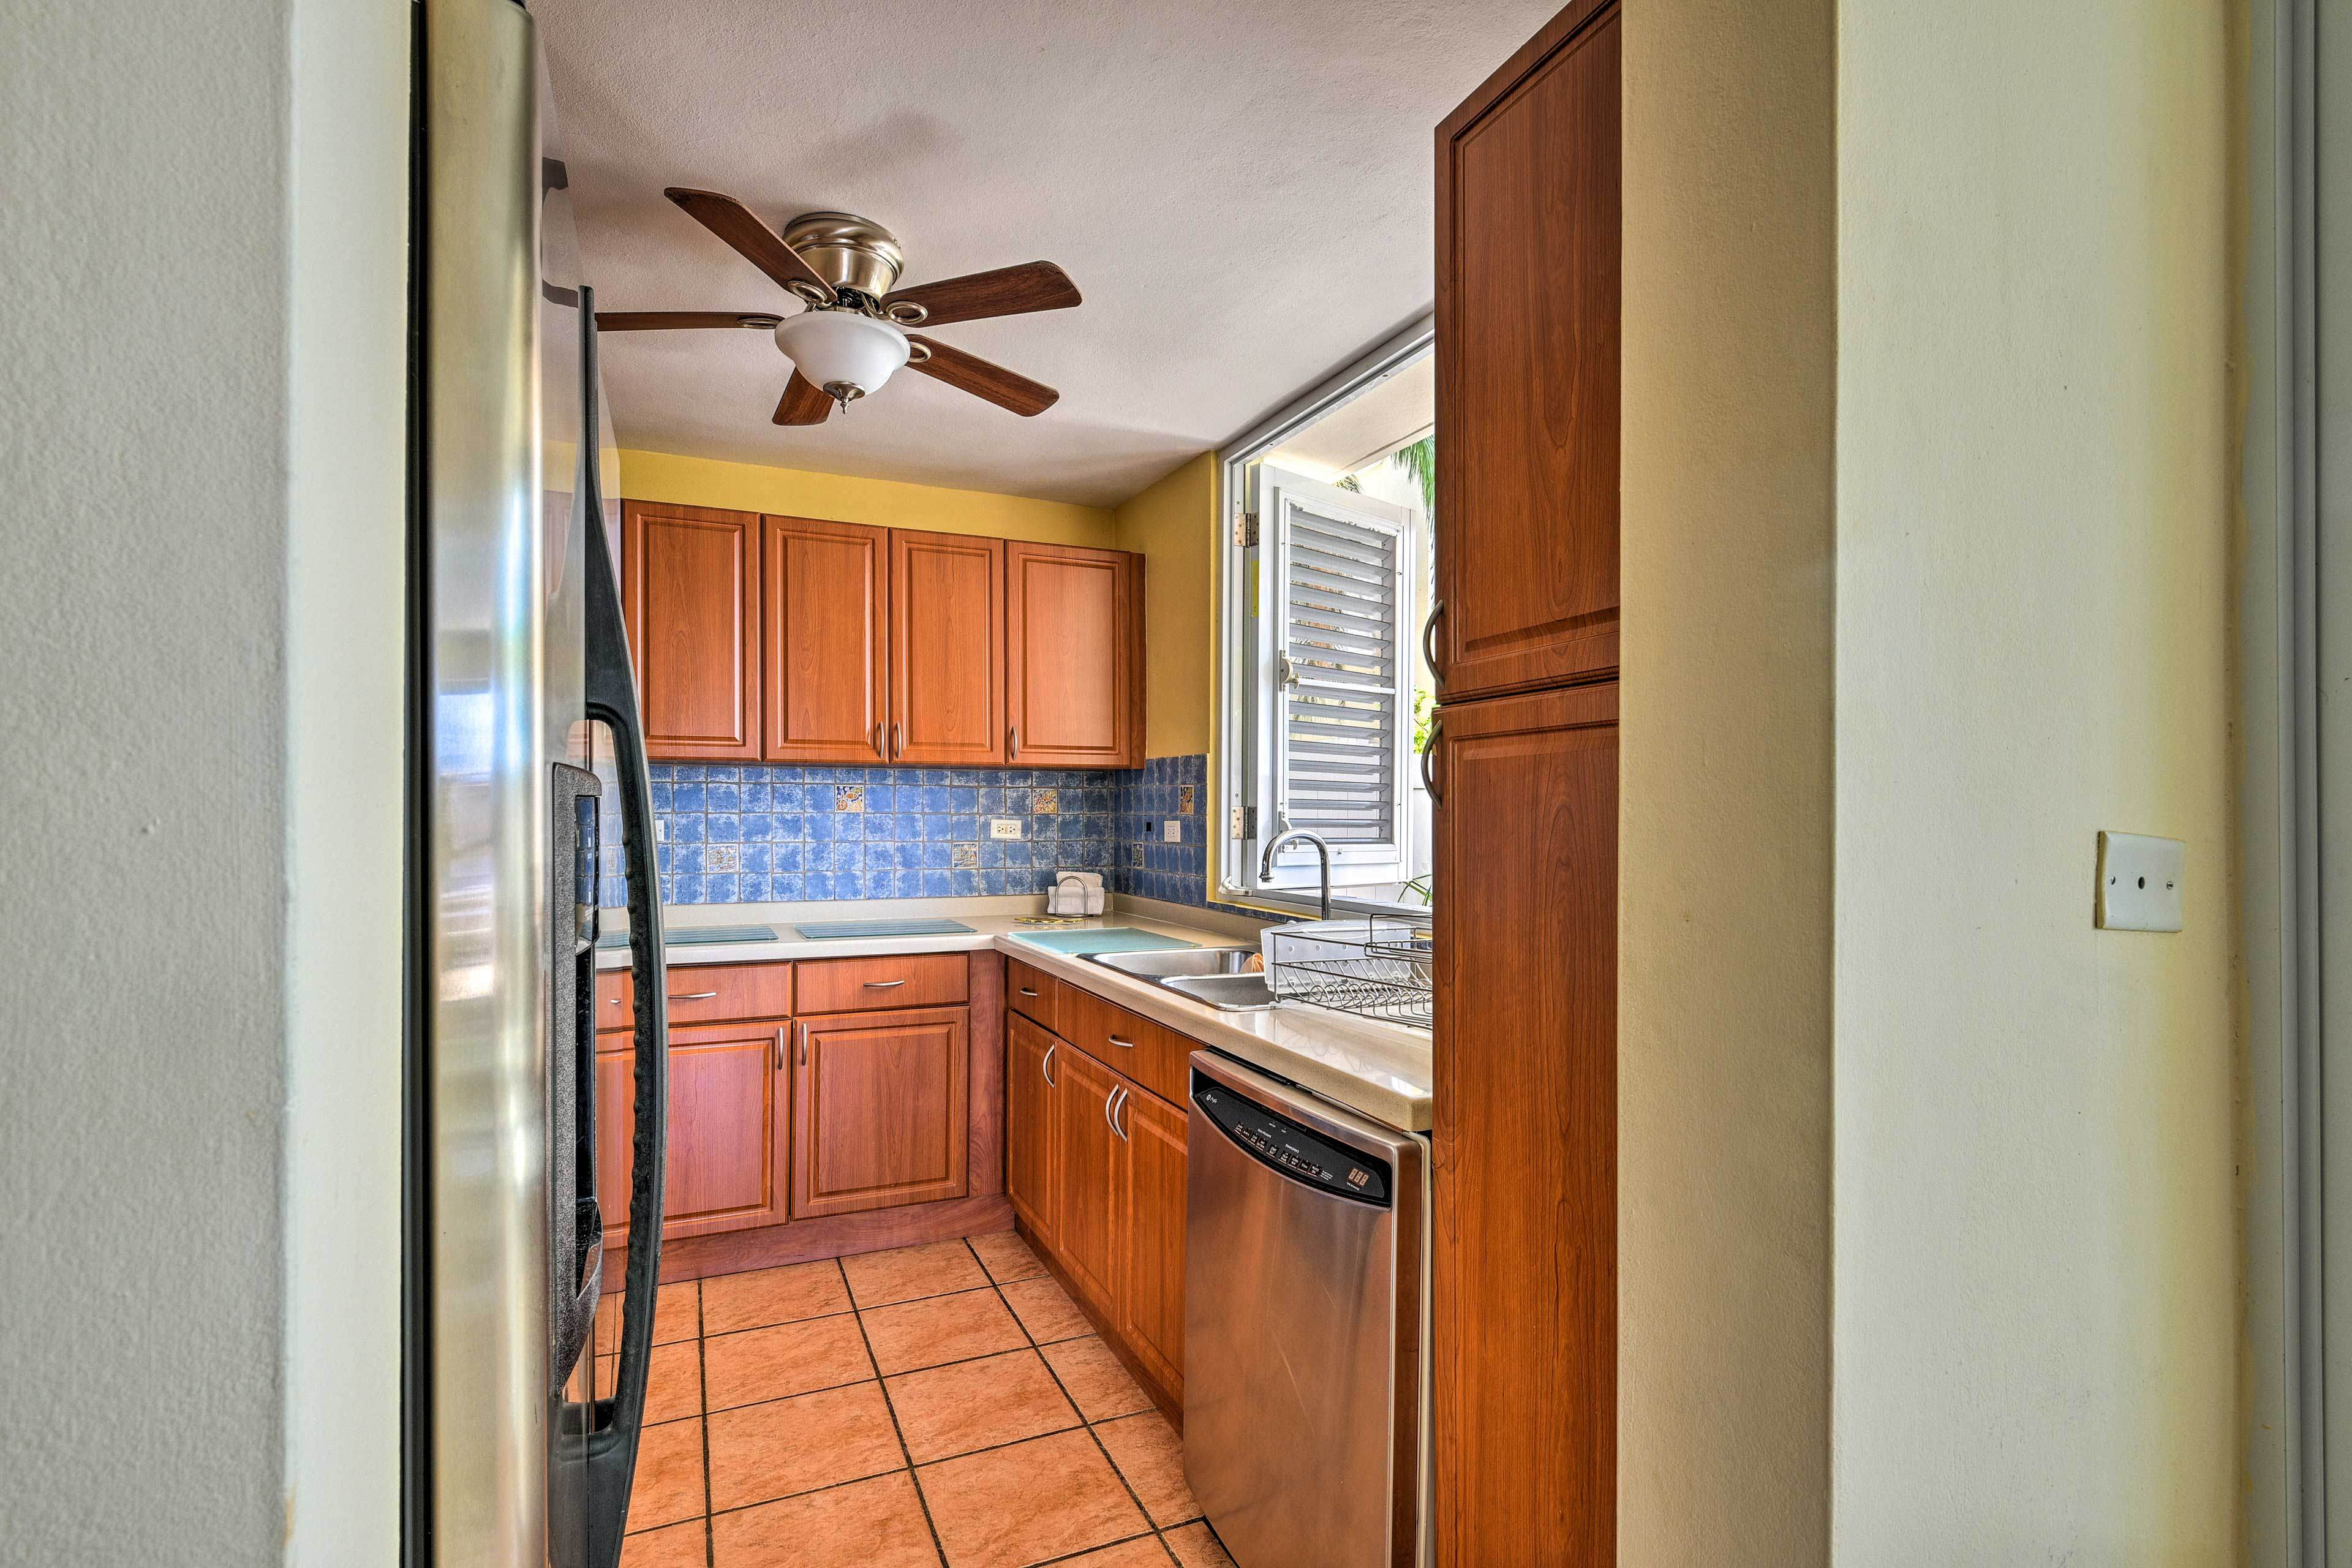 Begin meal preparations in the fully equipped kitchen.